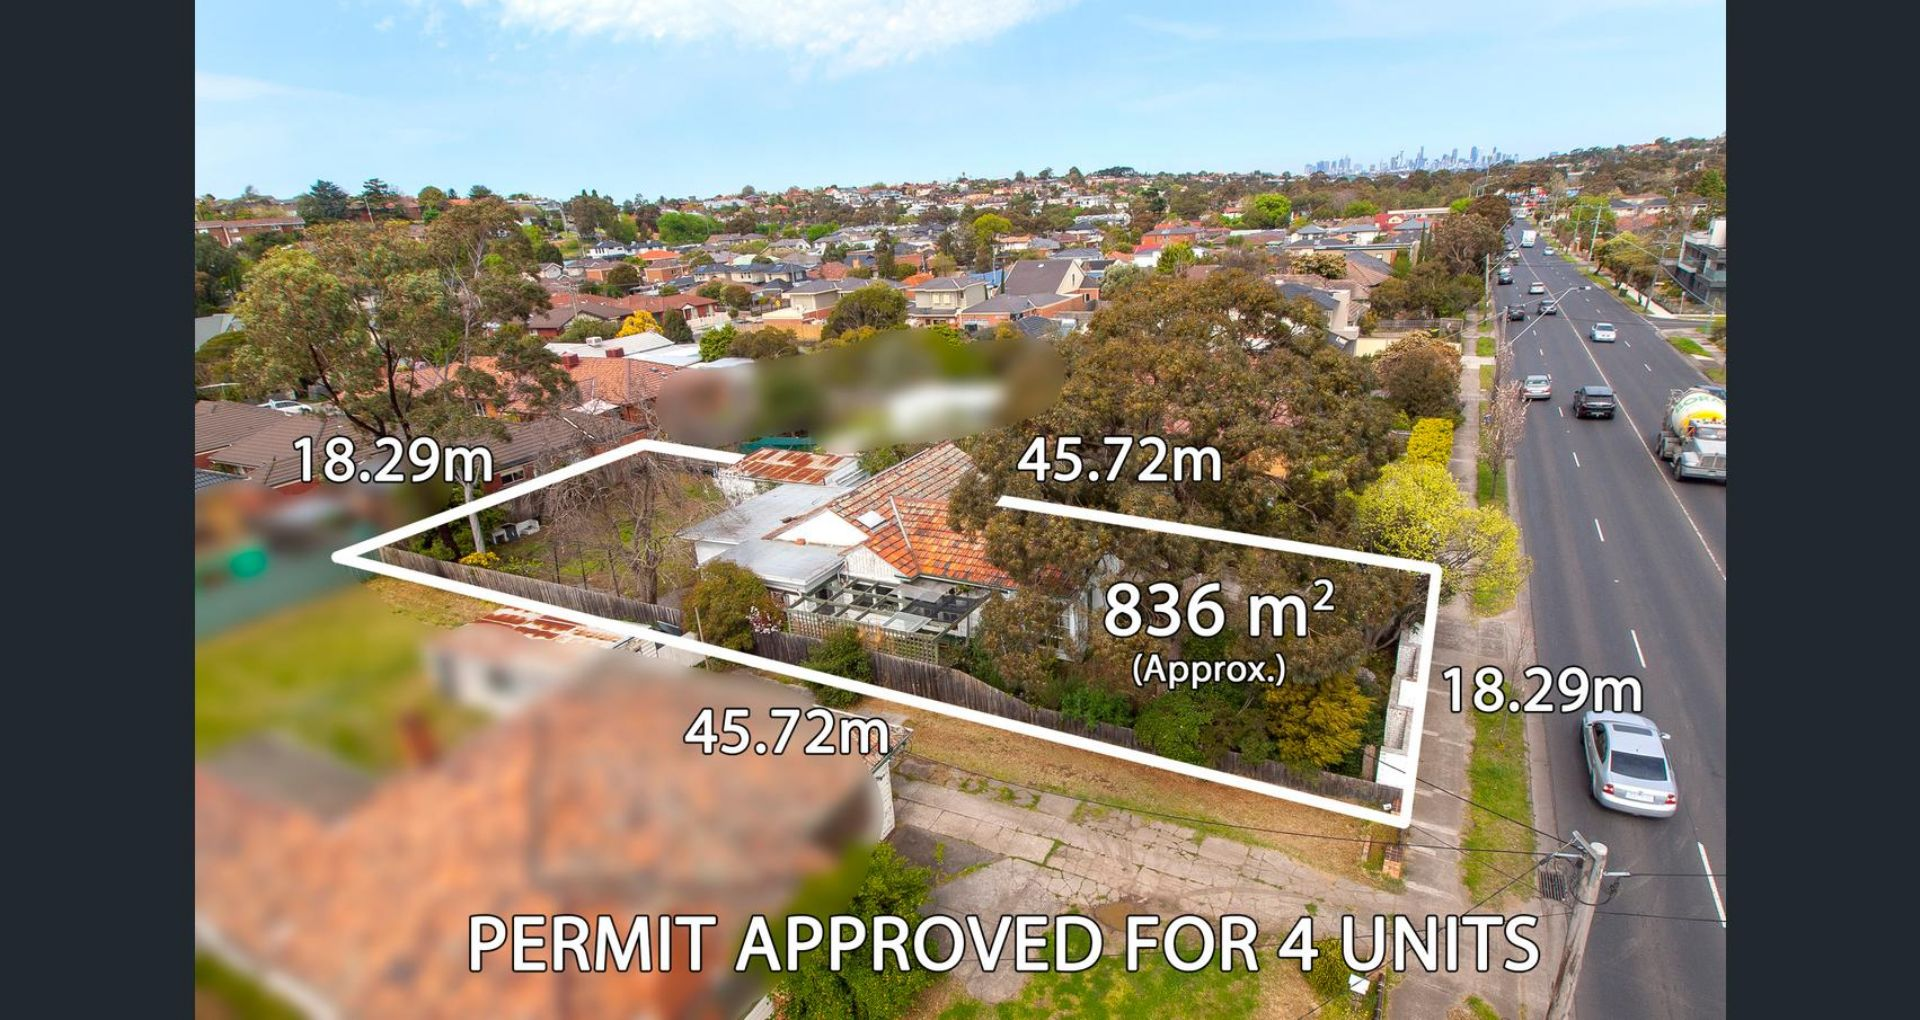 548 Pascoe Vale Road, PASCOE VALE, VIC, 3044 - Image